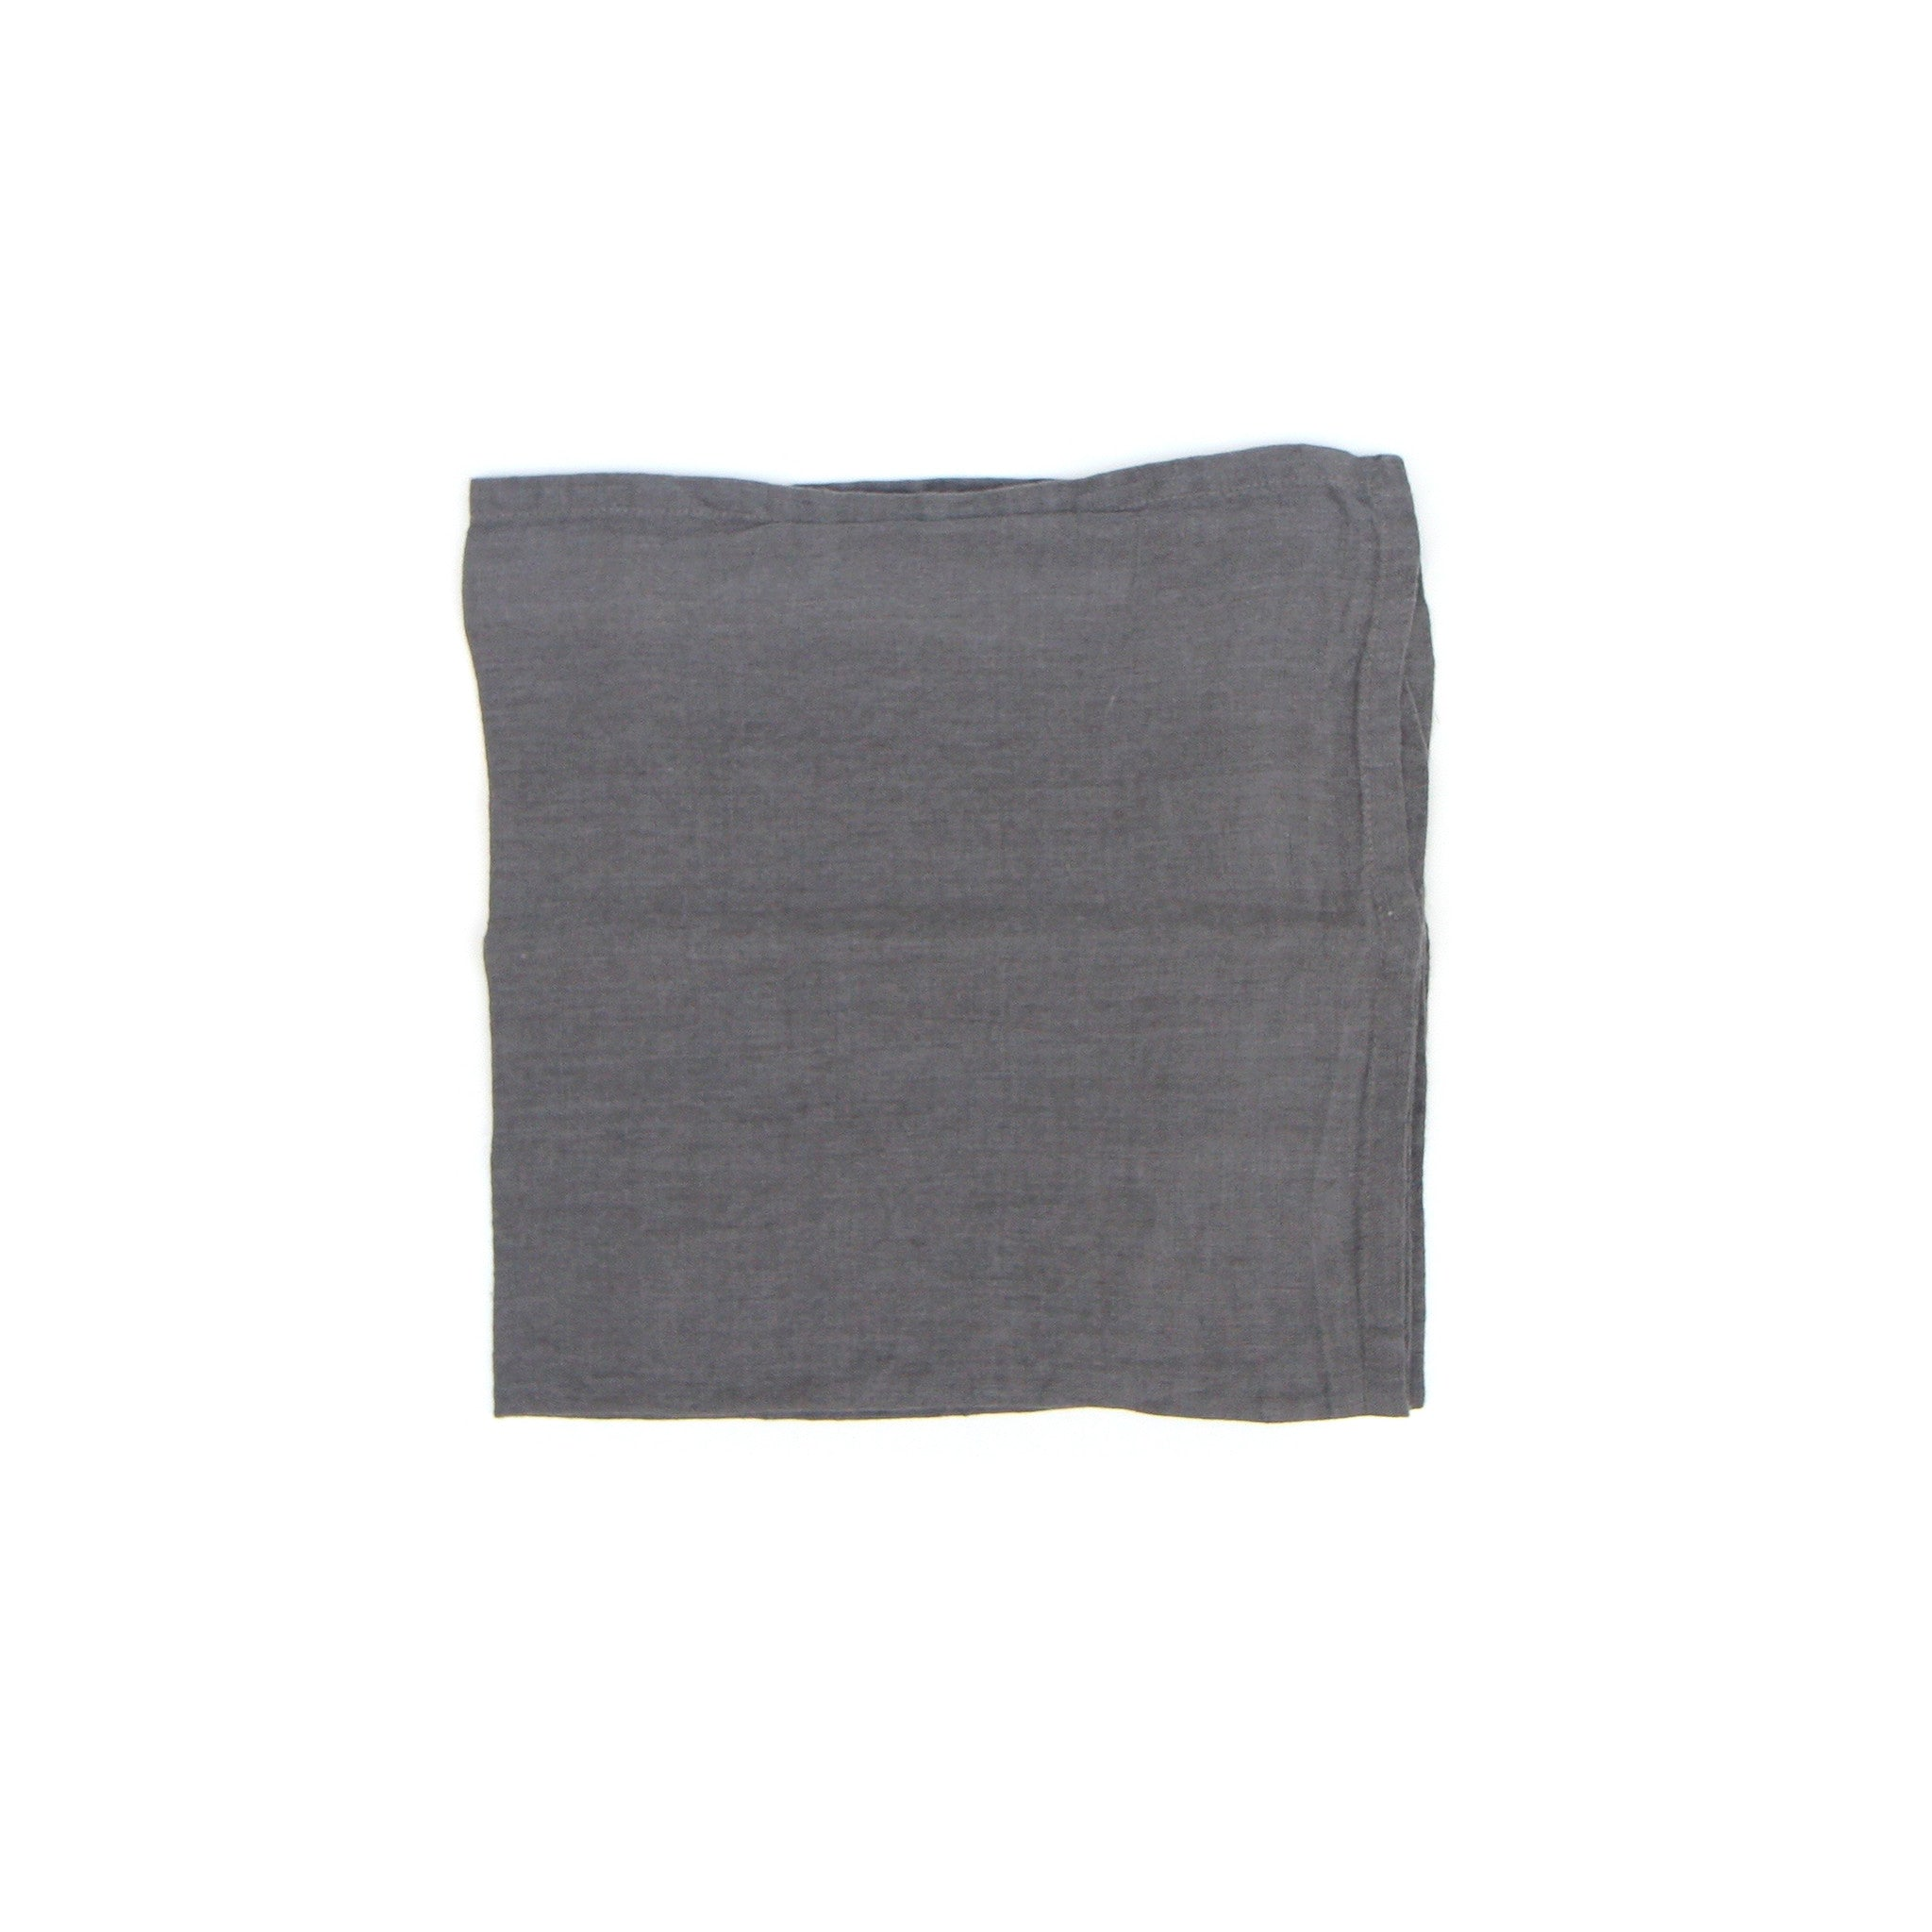 Washed Linen Napkin - Grey